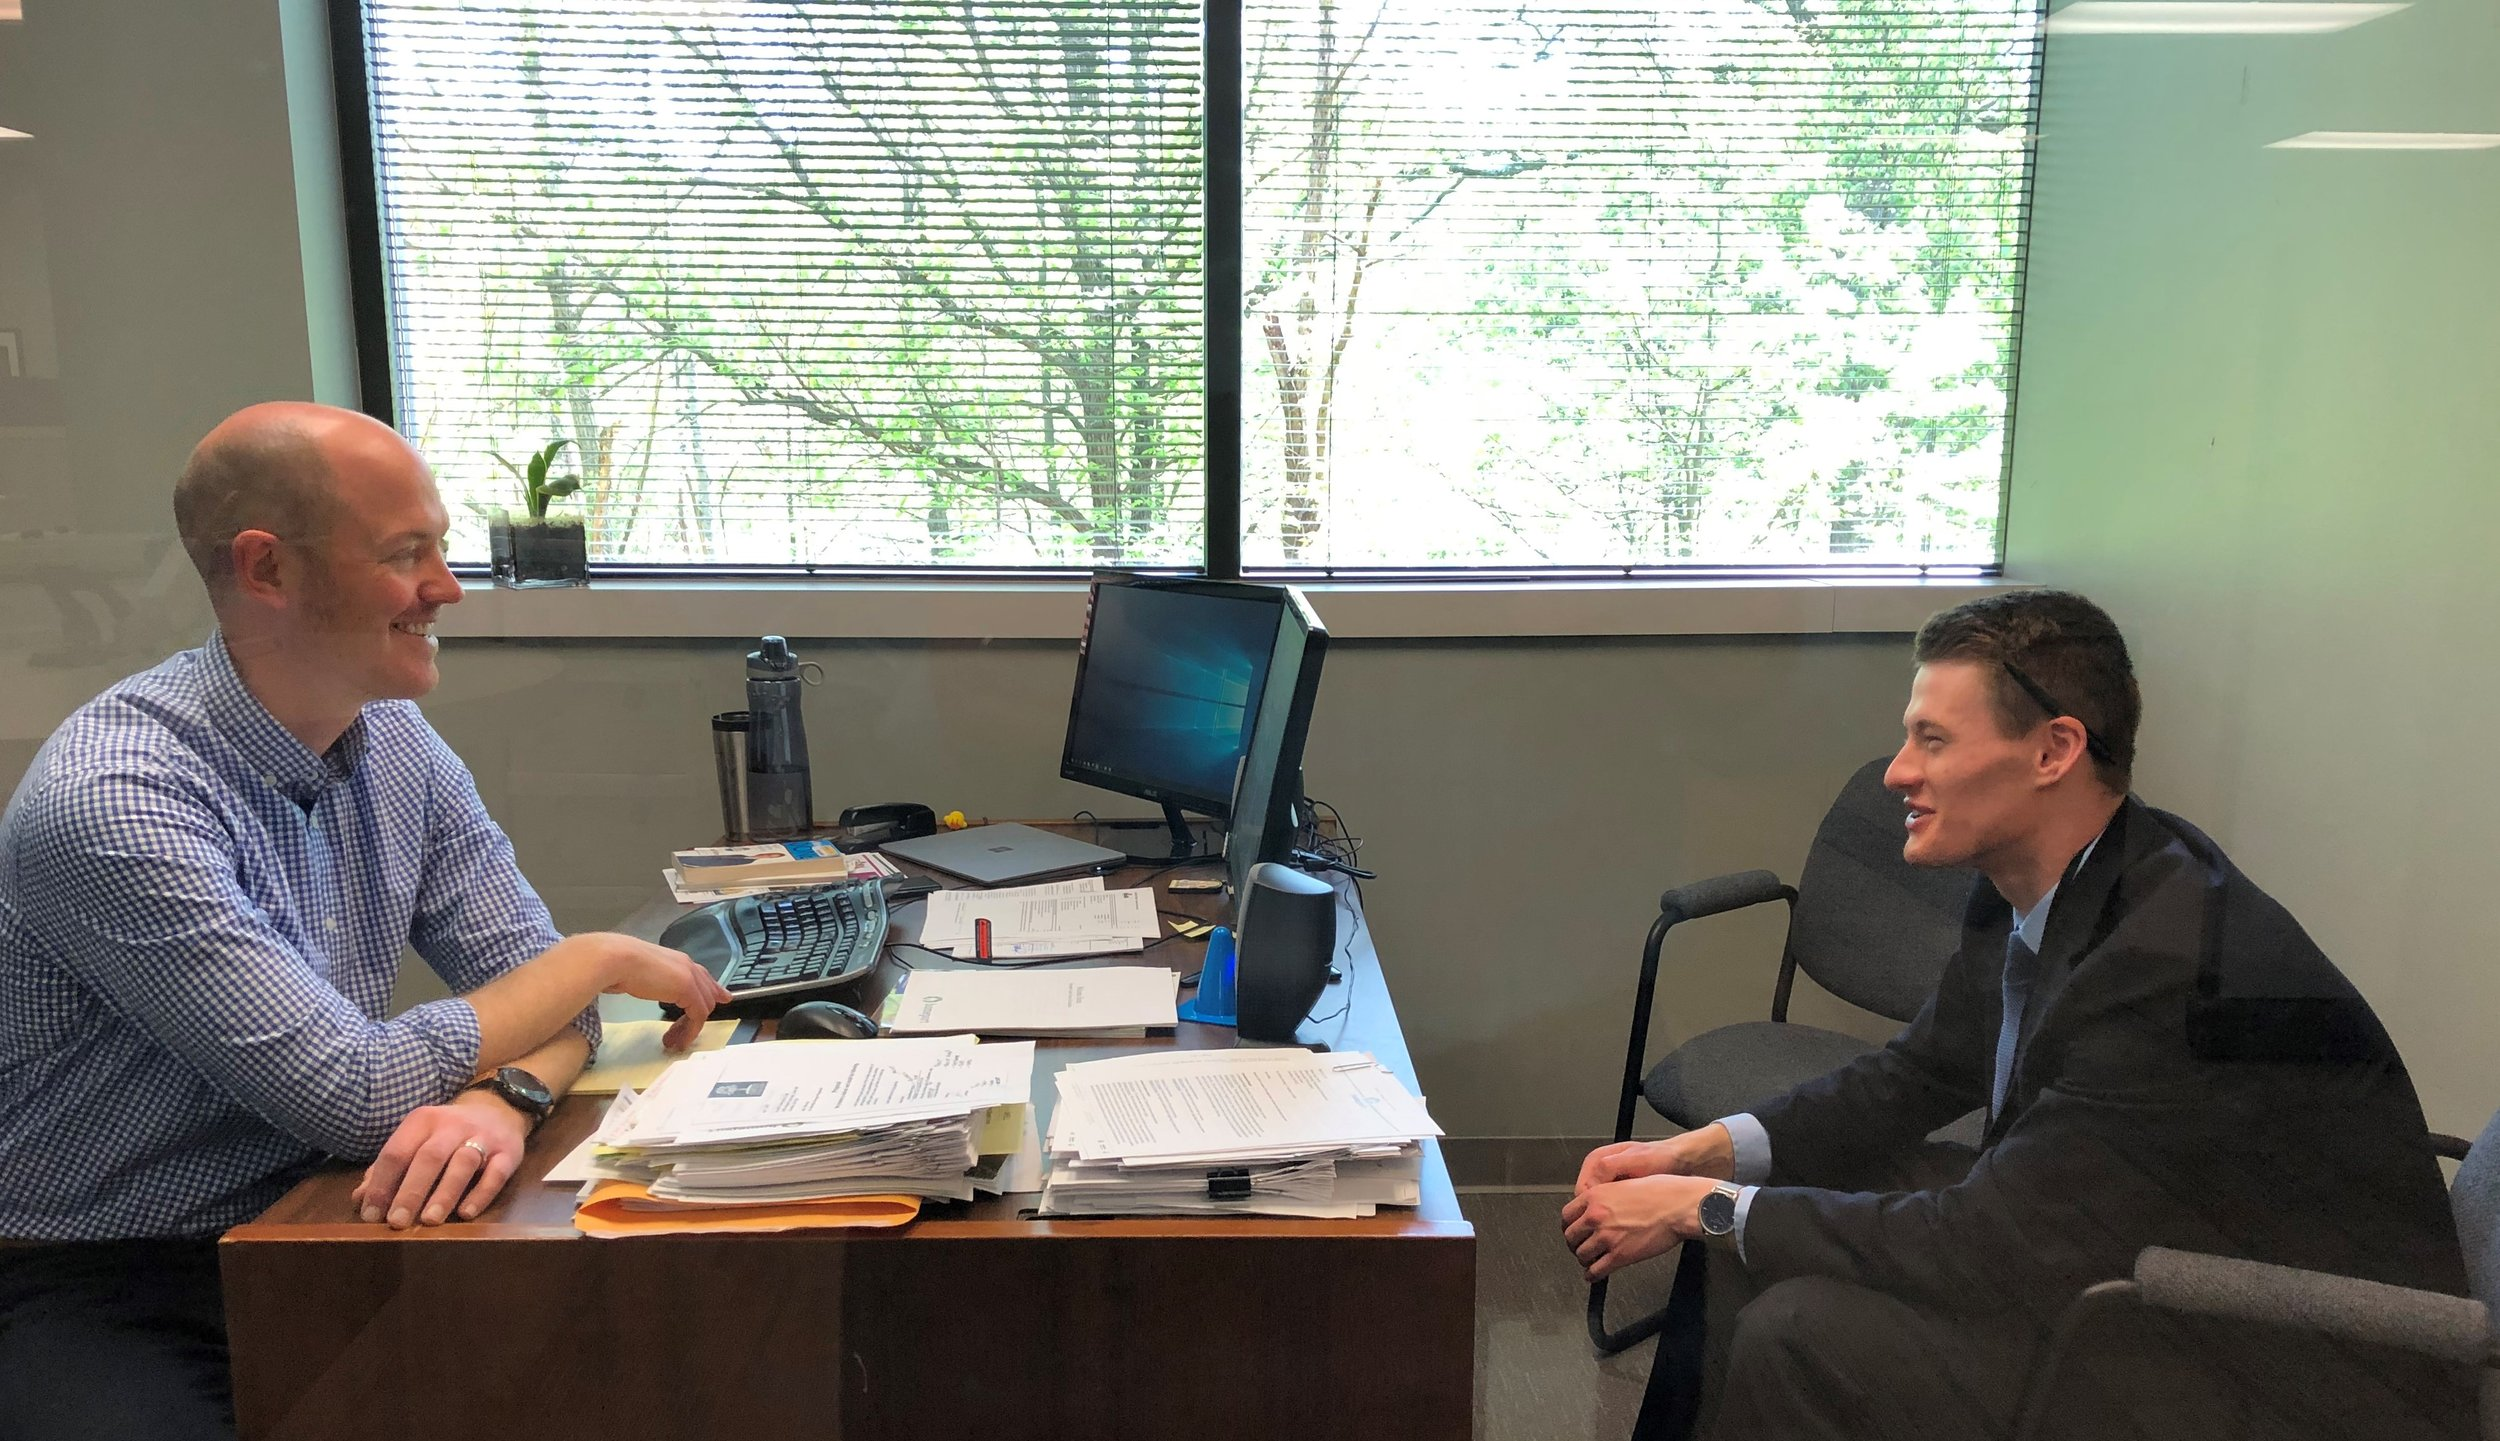 Homeport Project Manager Justin Metzler, left, and with Real Estate Intern Zack Hadley